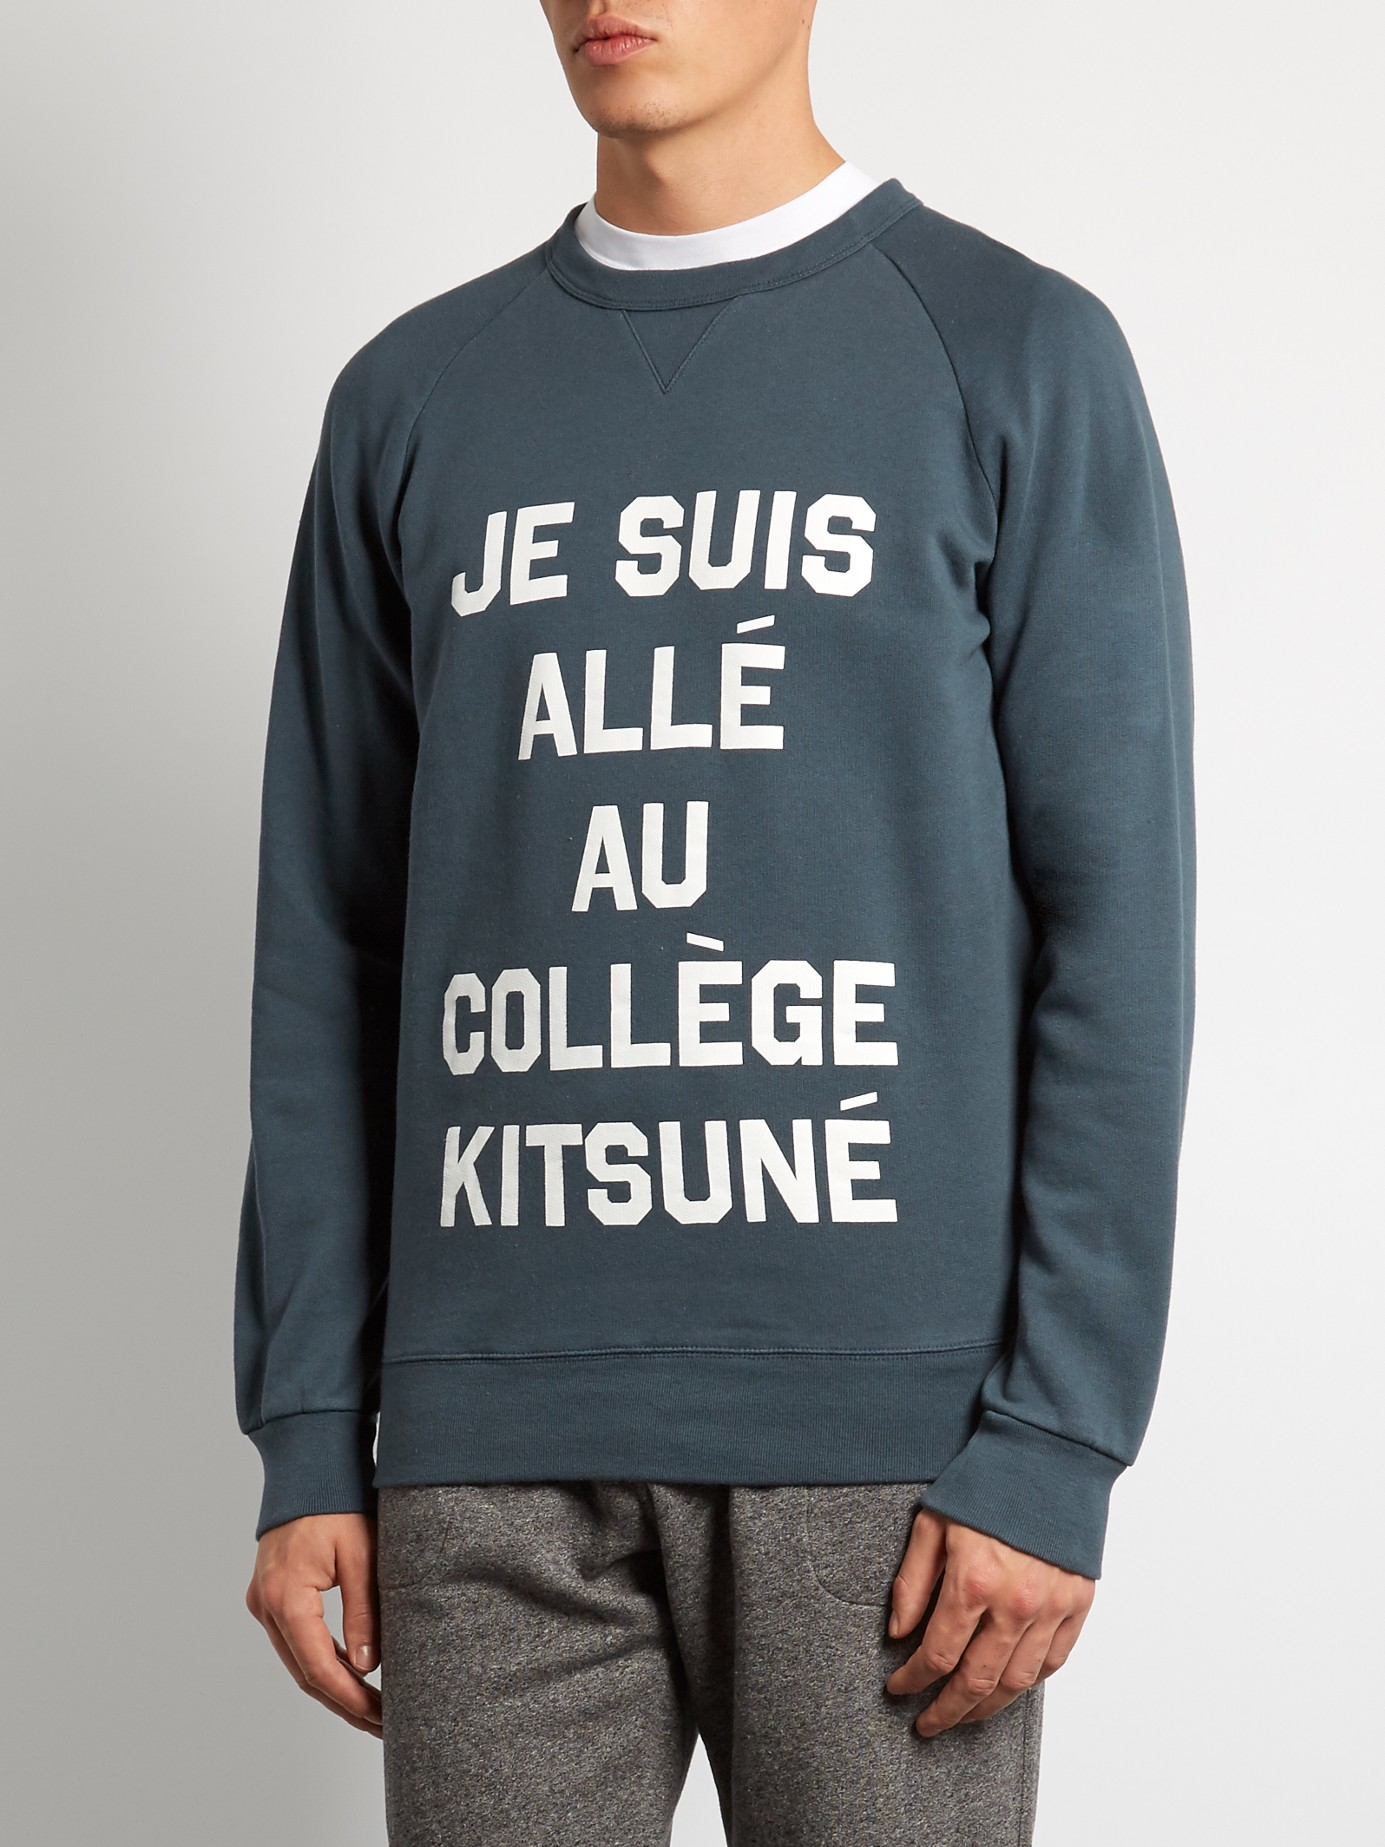 maison kitsun je suis all crew neck sweatshirt in blue for men lyst. Black Bedroom Furniture Sets. Home Design Ideas